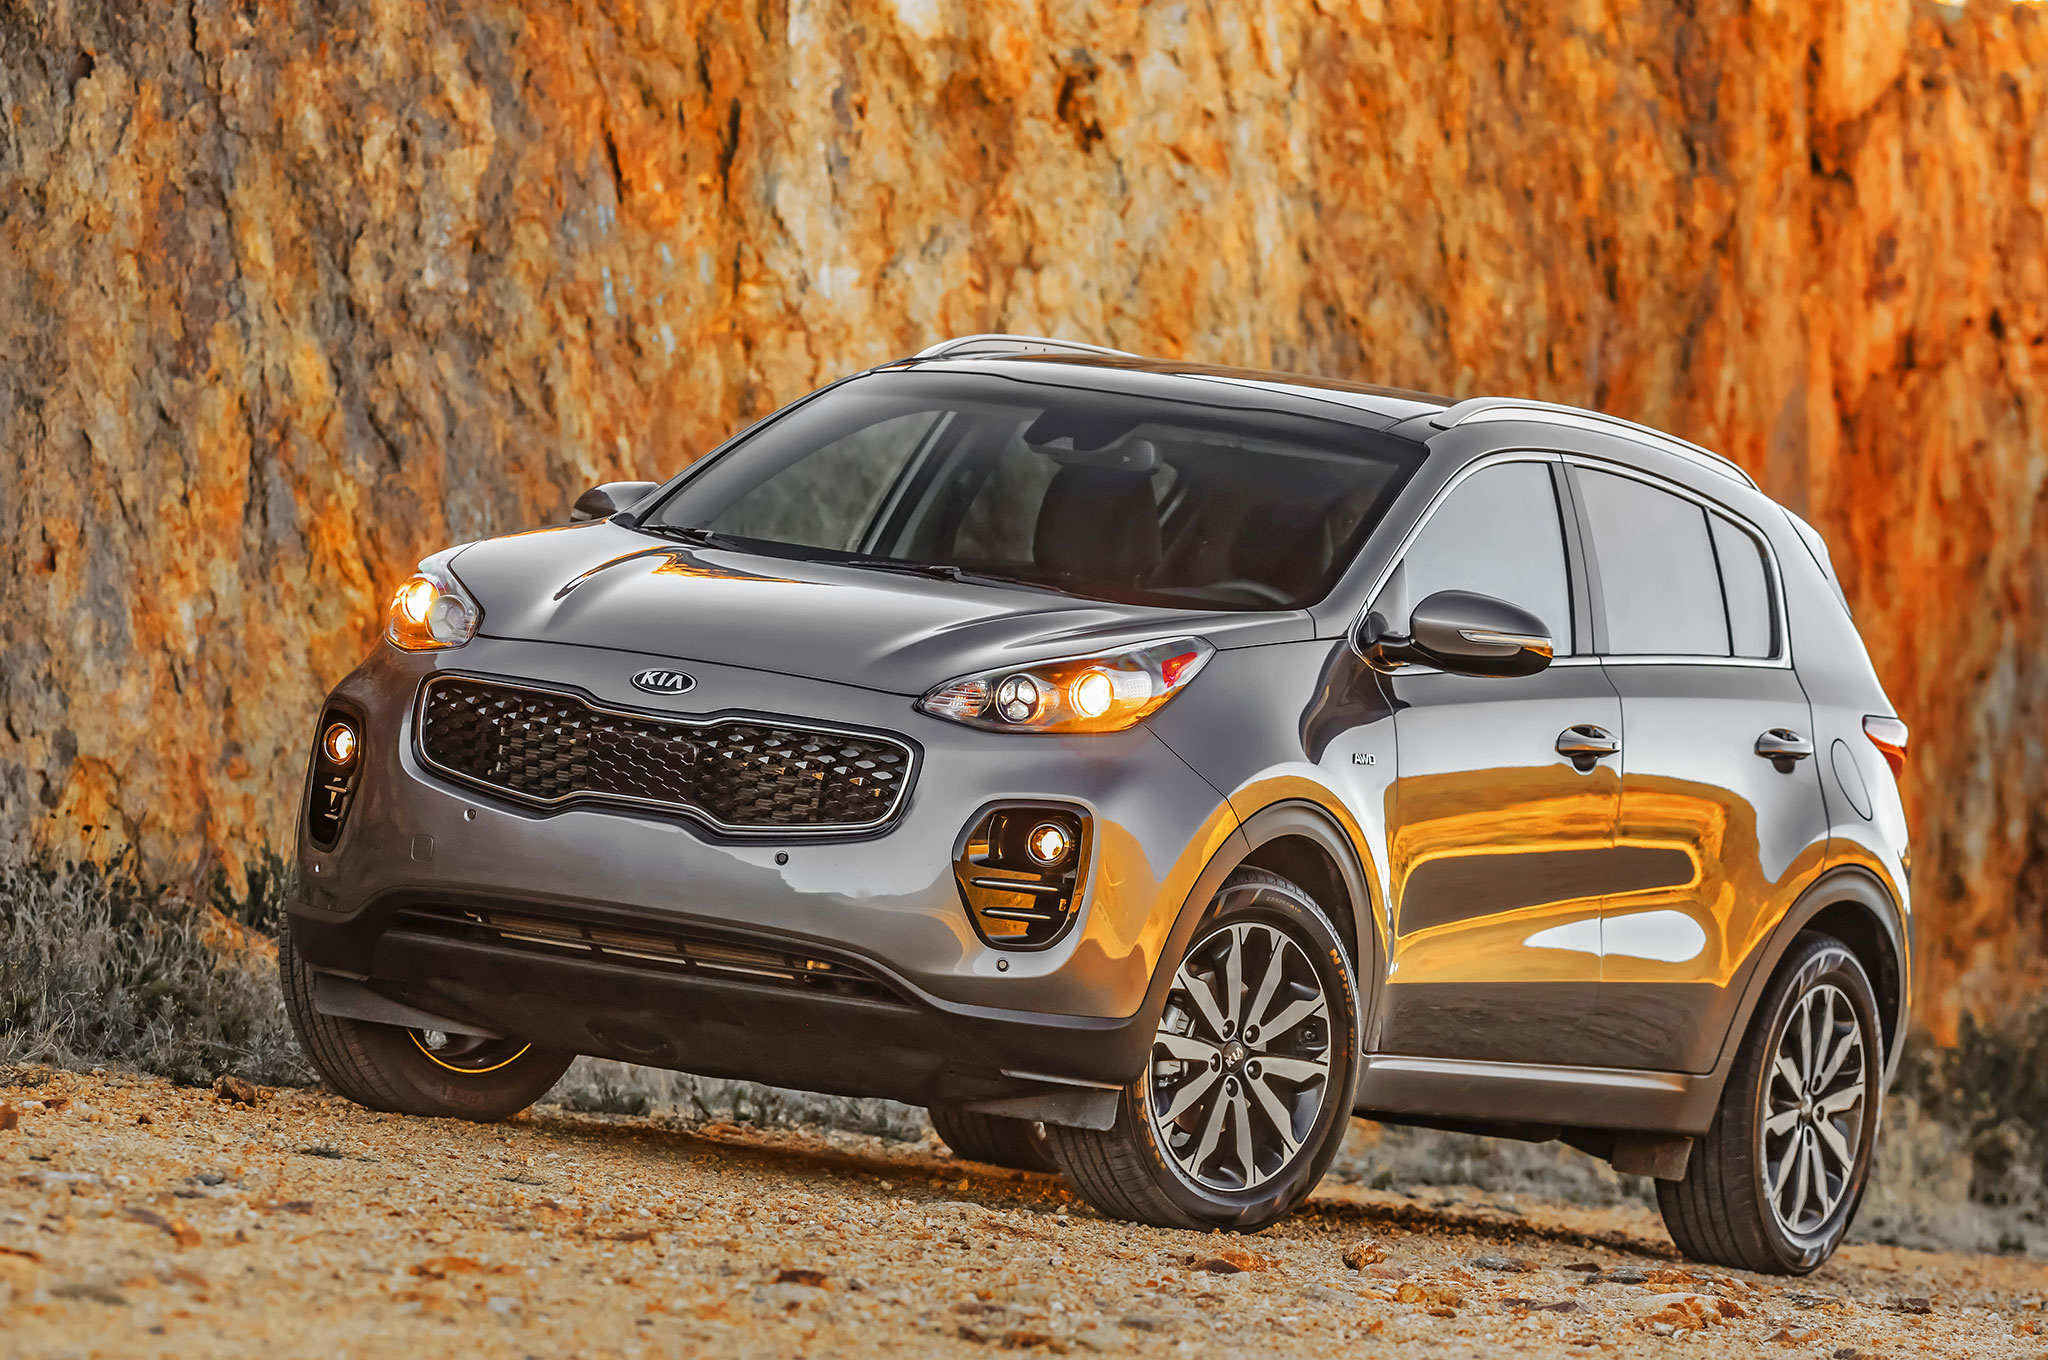 2017 kia sportage sx turbo review. Black Bedroom Furniture Sets. Home Design Ideas